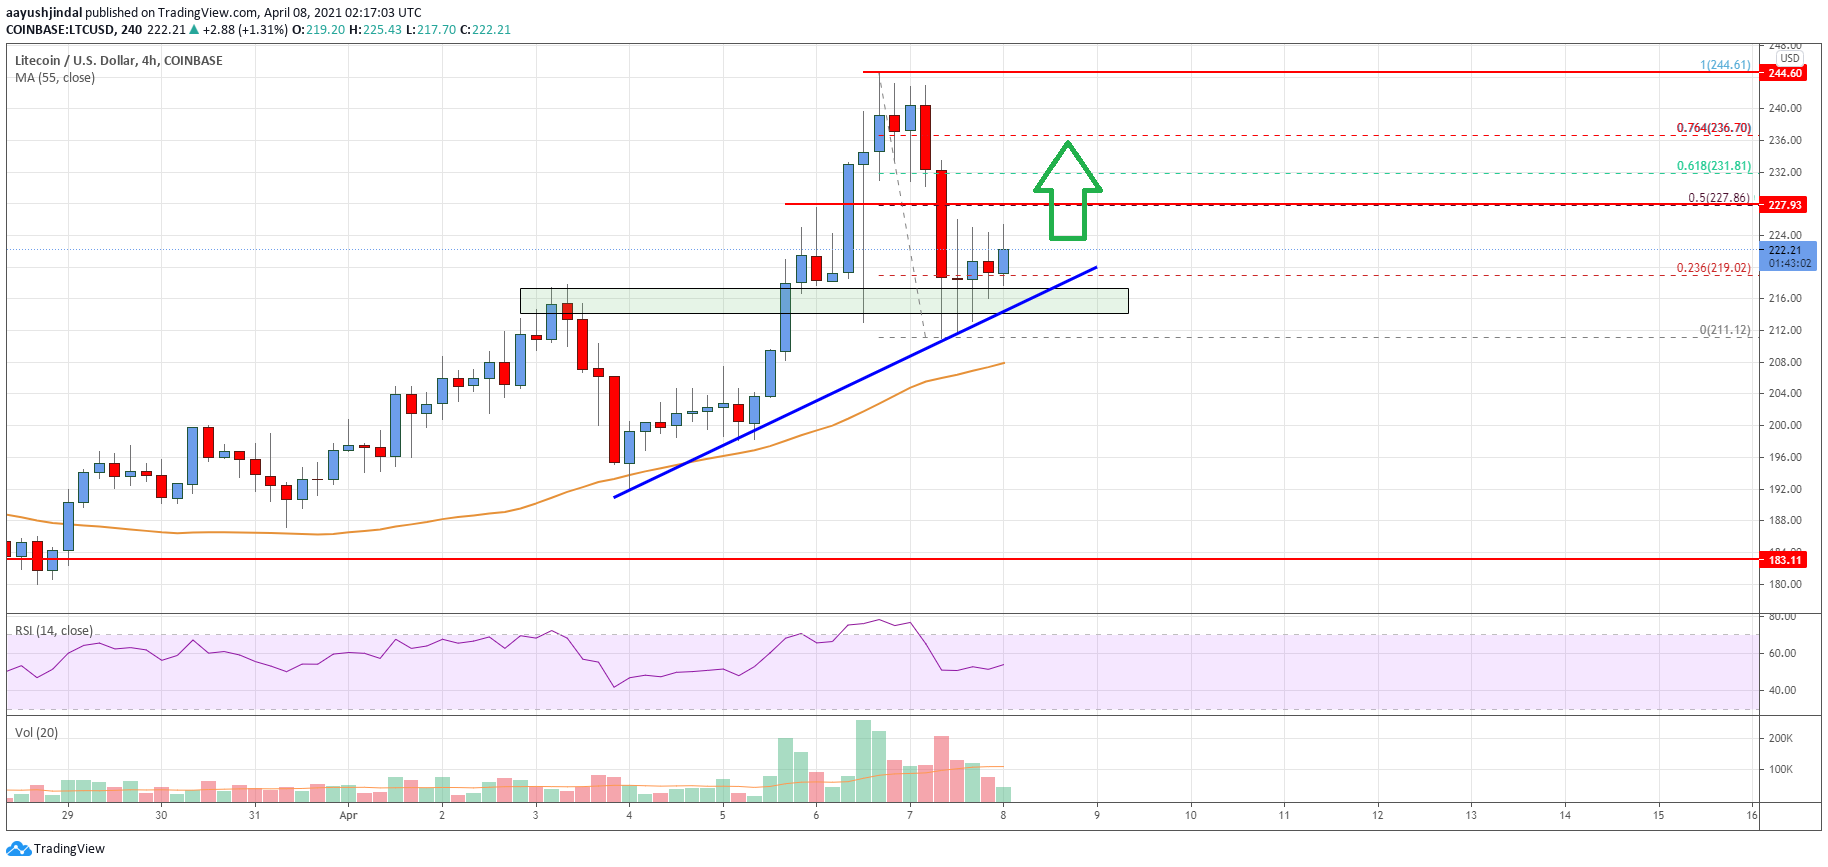 Litecoin (LTC) Price Analysis: Holds Key Support Near $210